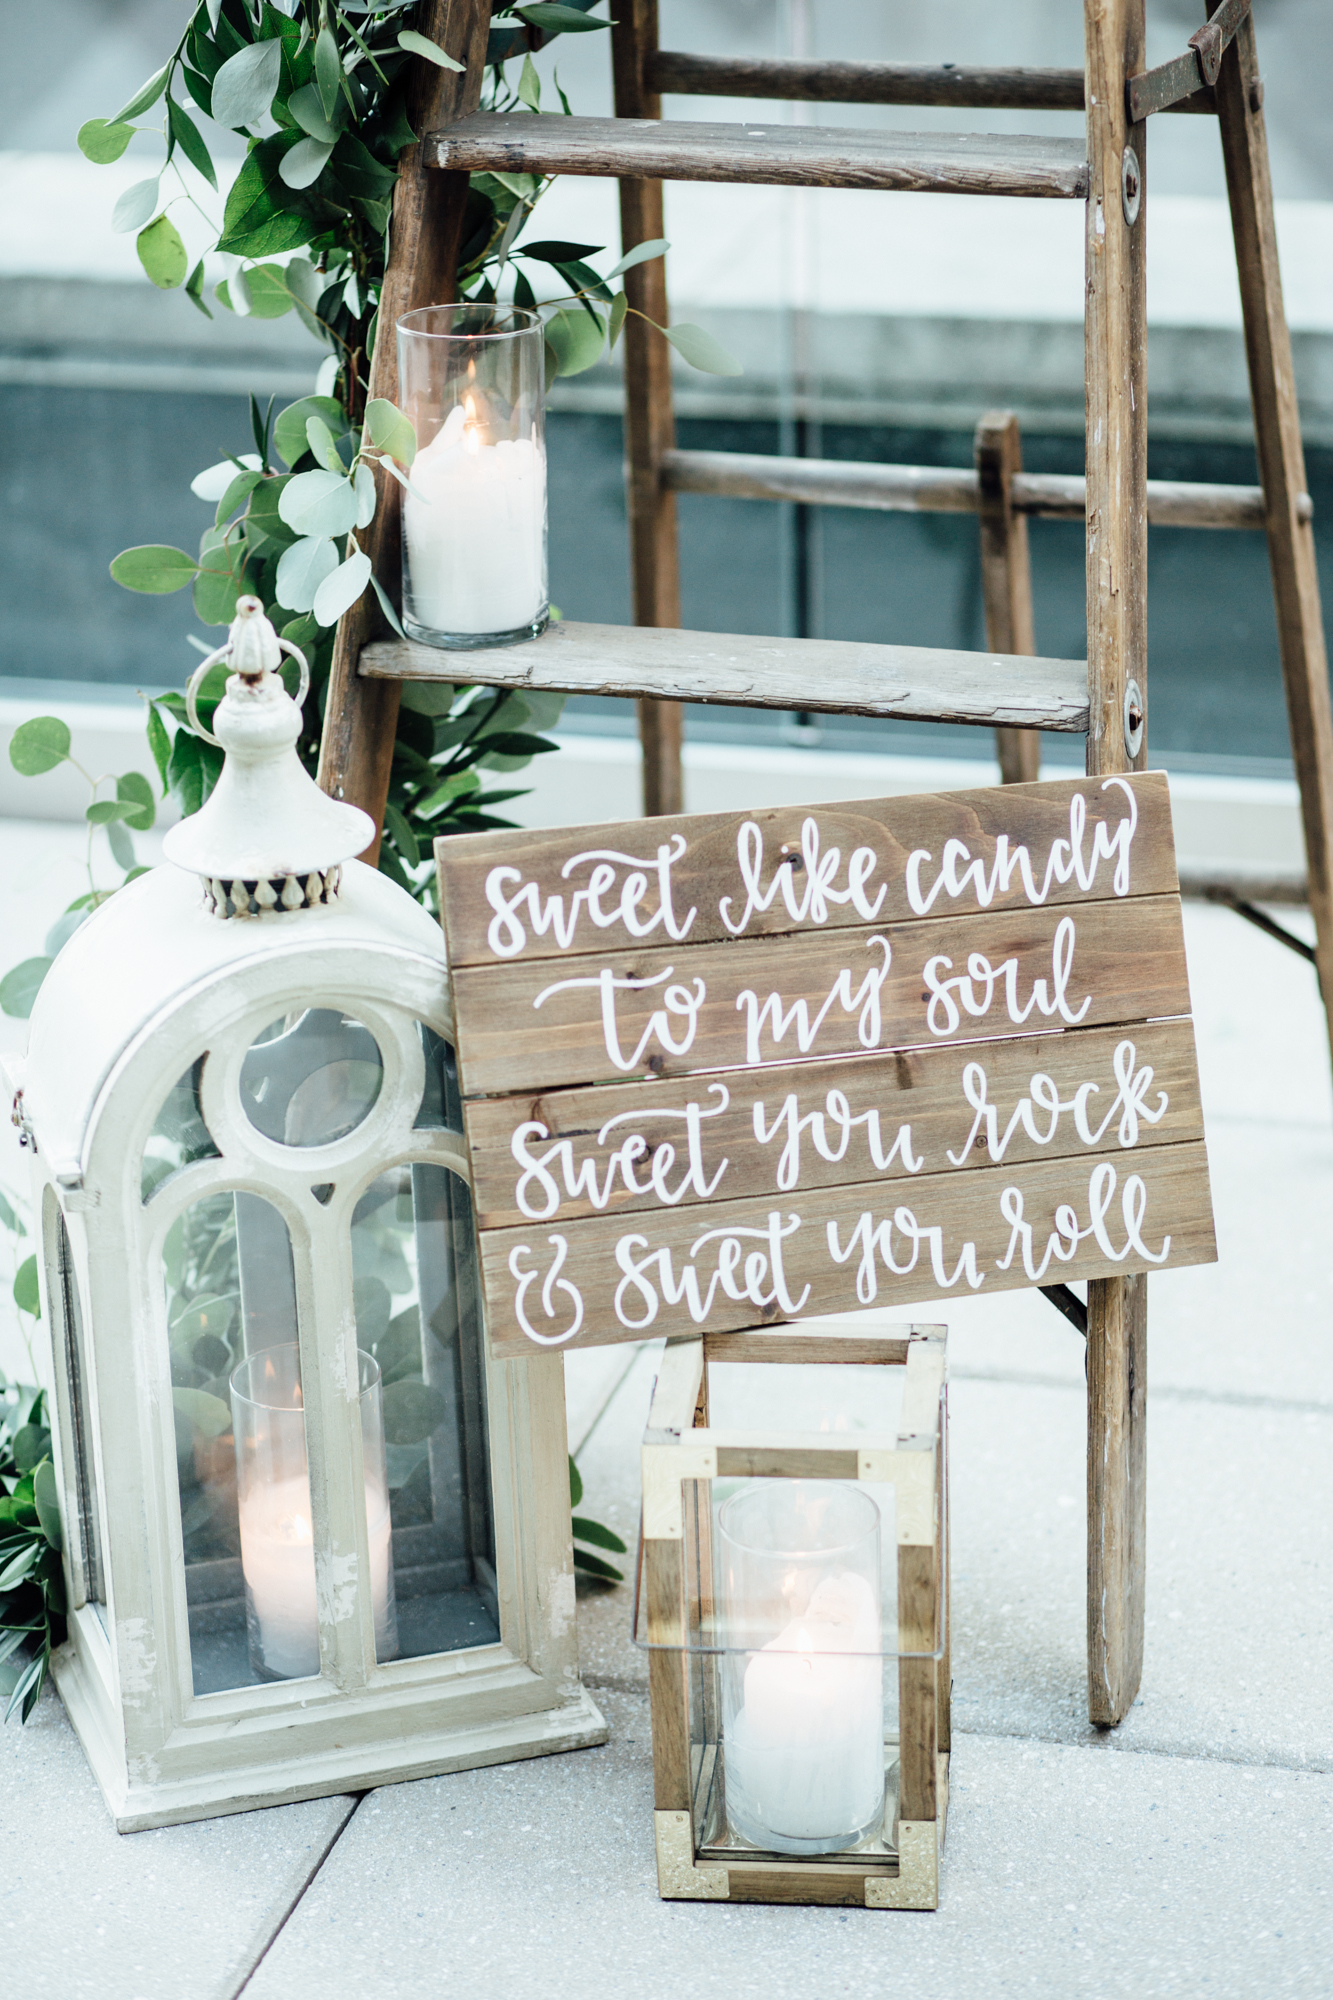 Romantic Rooftop Proposal Handwritten Calligraphy | Exhale Events and Wedding Planners Pittsburgh